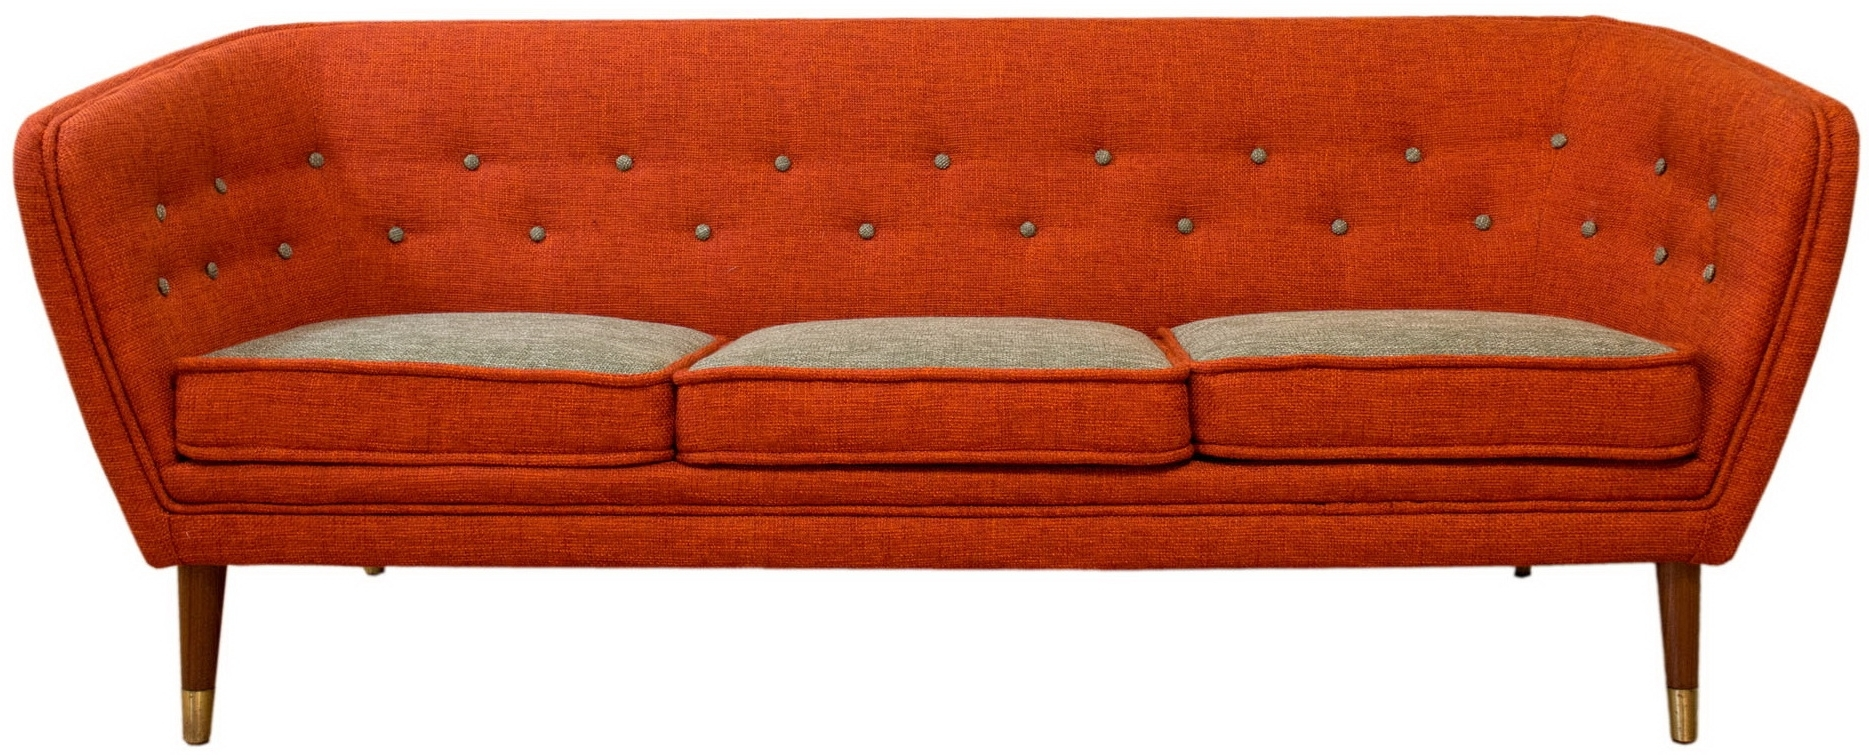 1930S Sofas 37 With 1930S Sofas – Fjellkjeden Intended For Most Up To Date 1930S Sofas (Gallery 12 of 20)